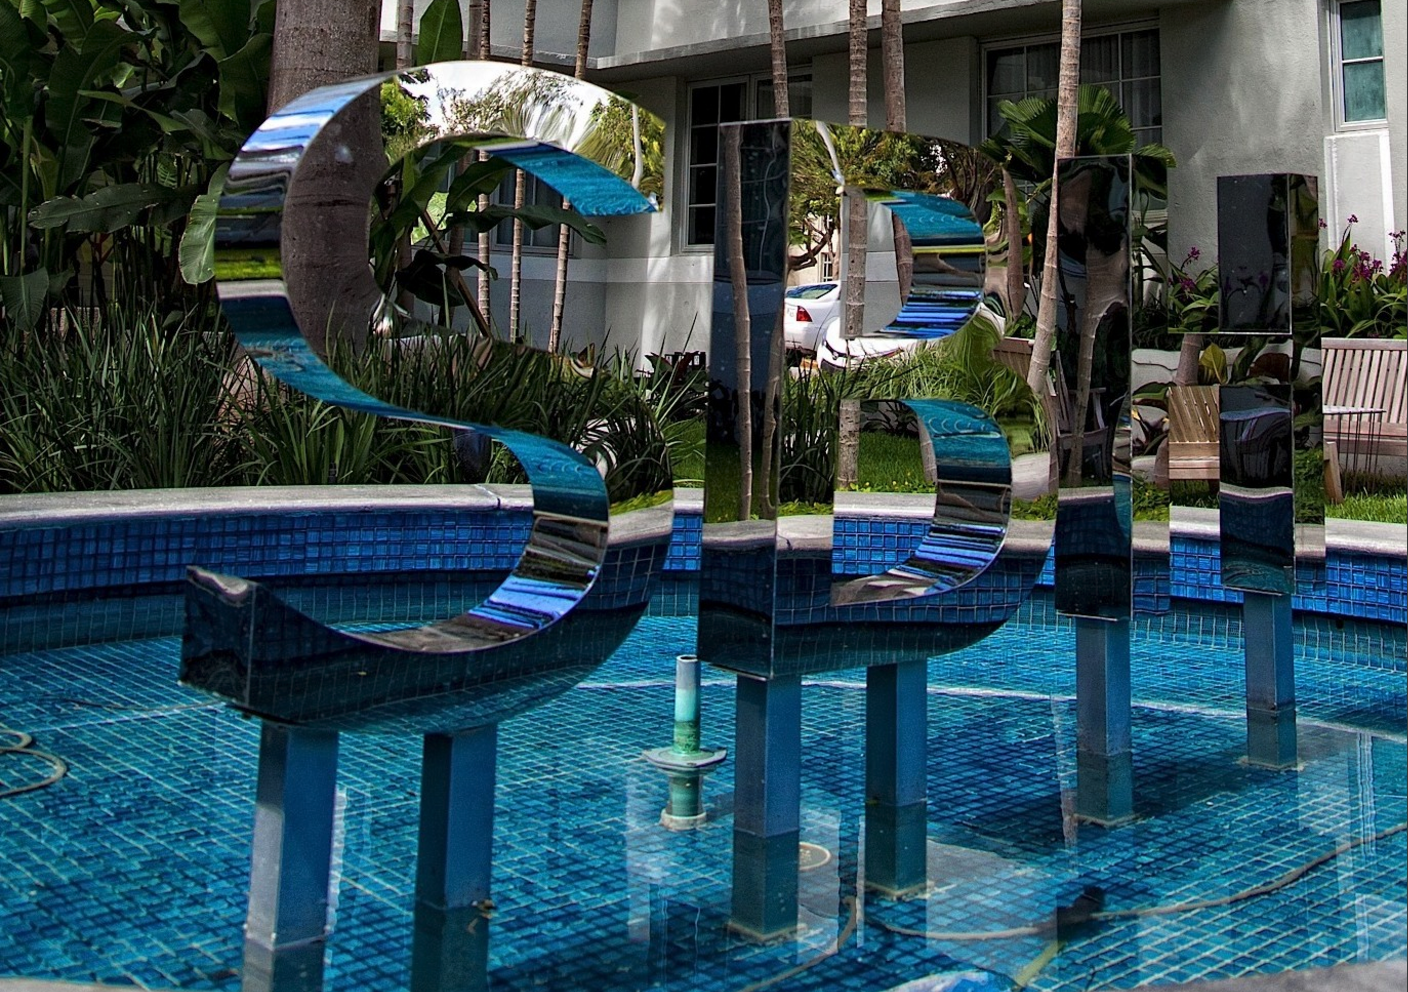 Jw Marriott To Manage Two Hotels In South Beach Singapore Hotel Management